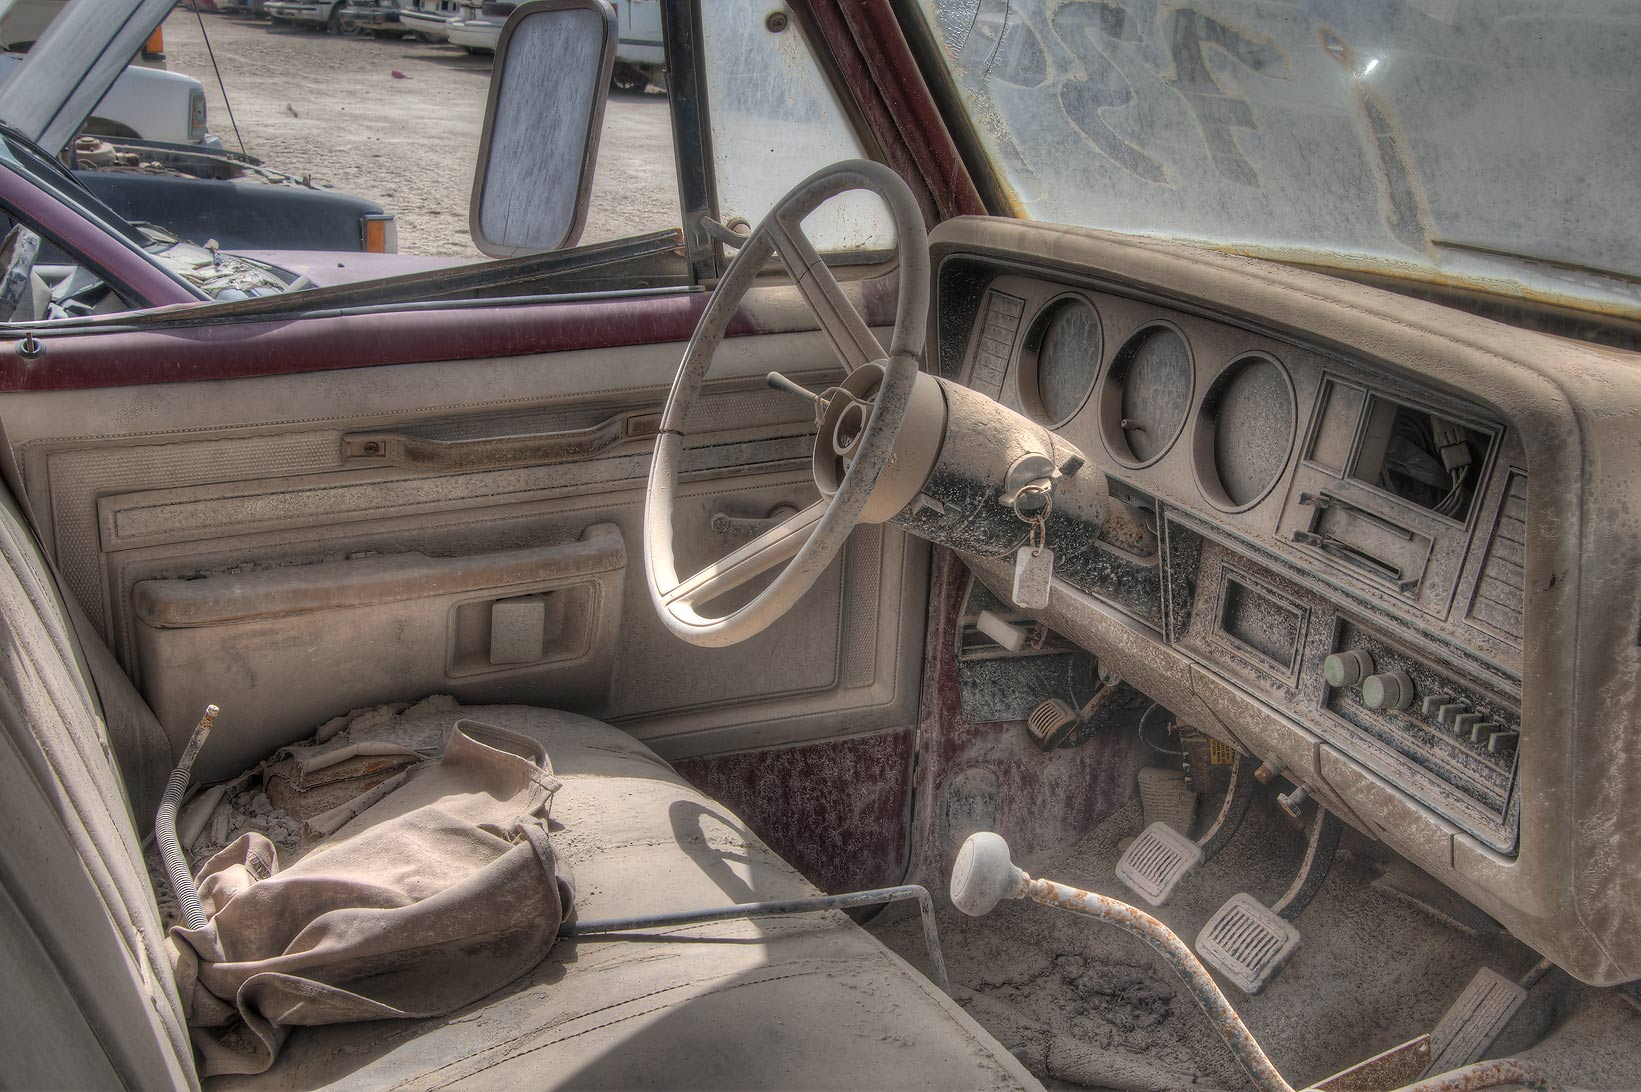 Junk car with keys north of Mesaieed (Umm Said). Qatar